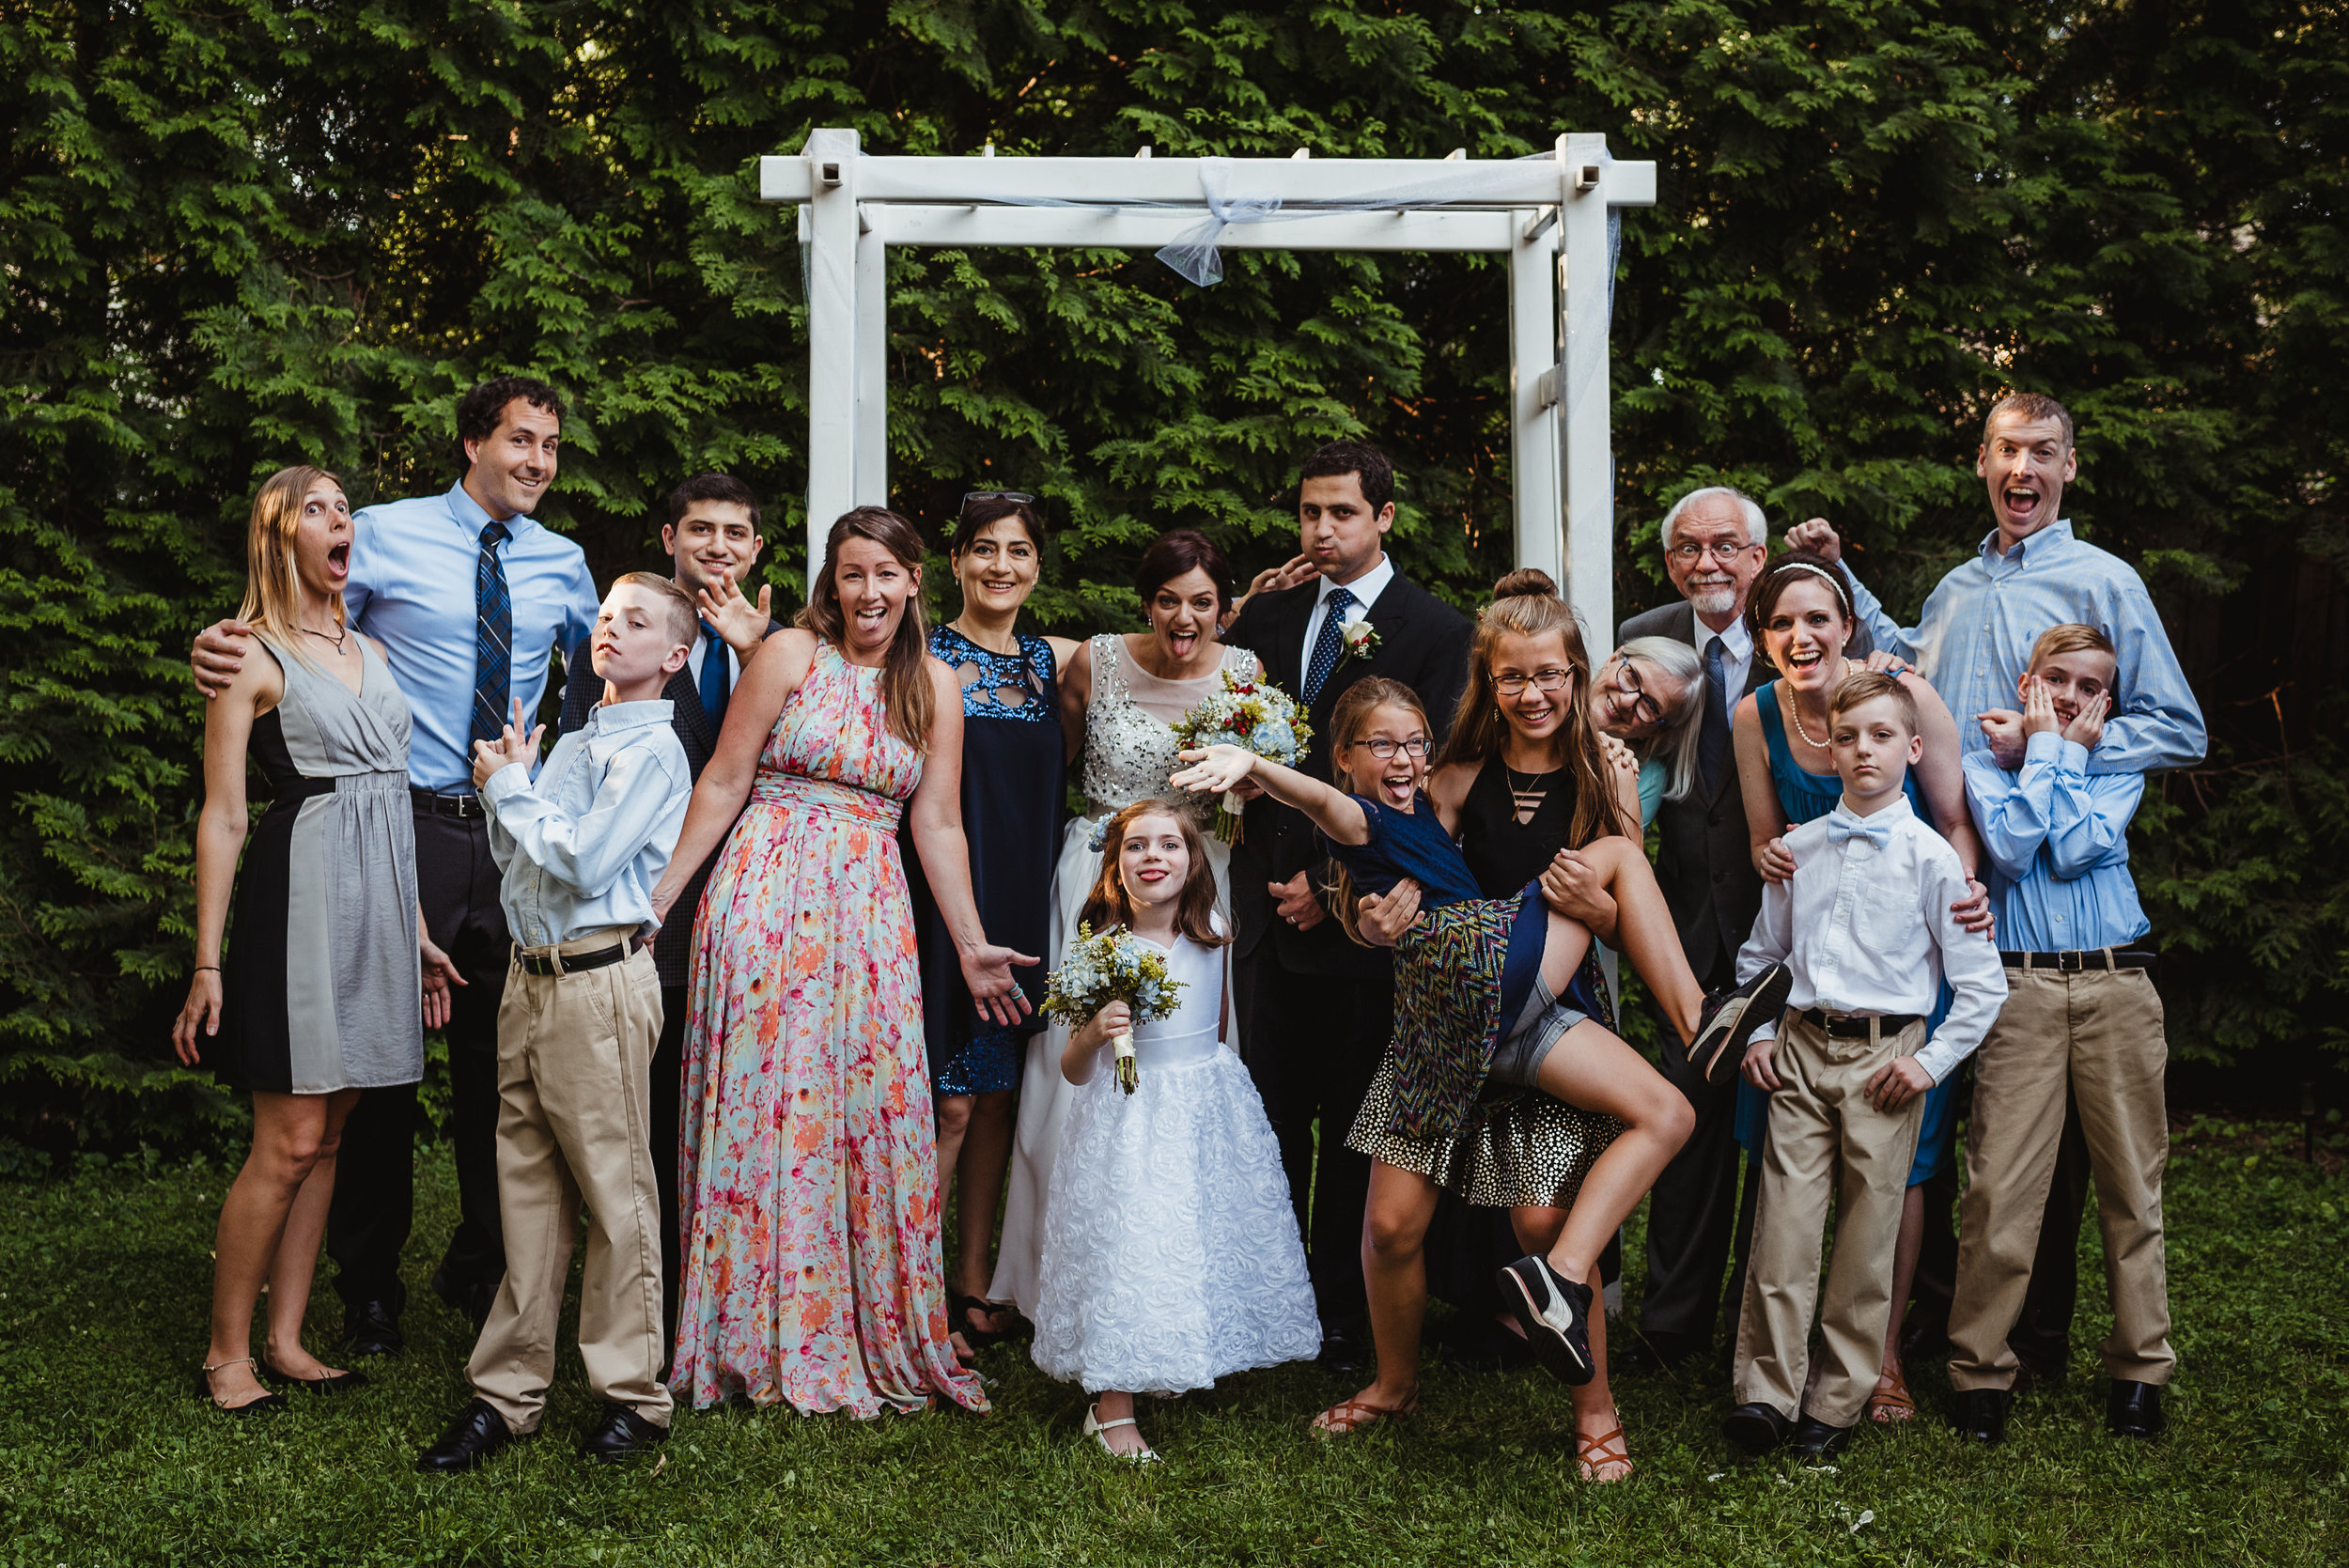 Raleigh-wedding-photographer-group-family-photo-rose-trail-images.jpg